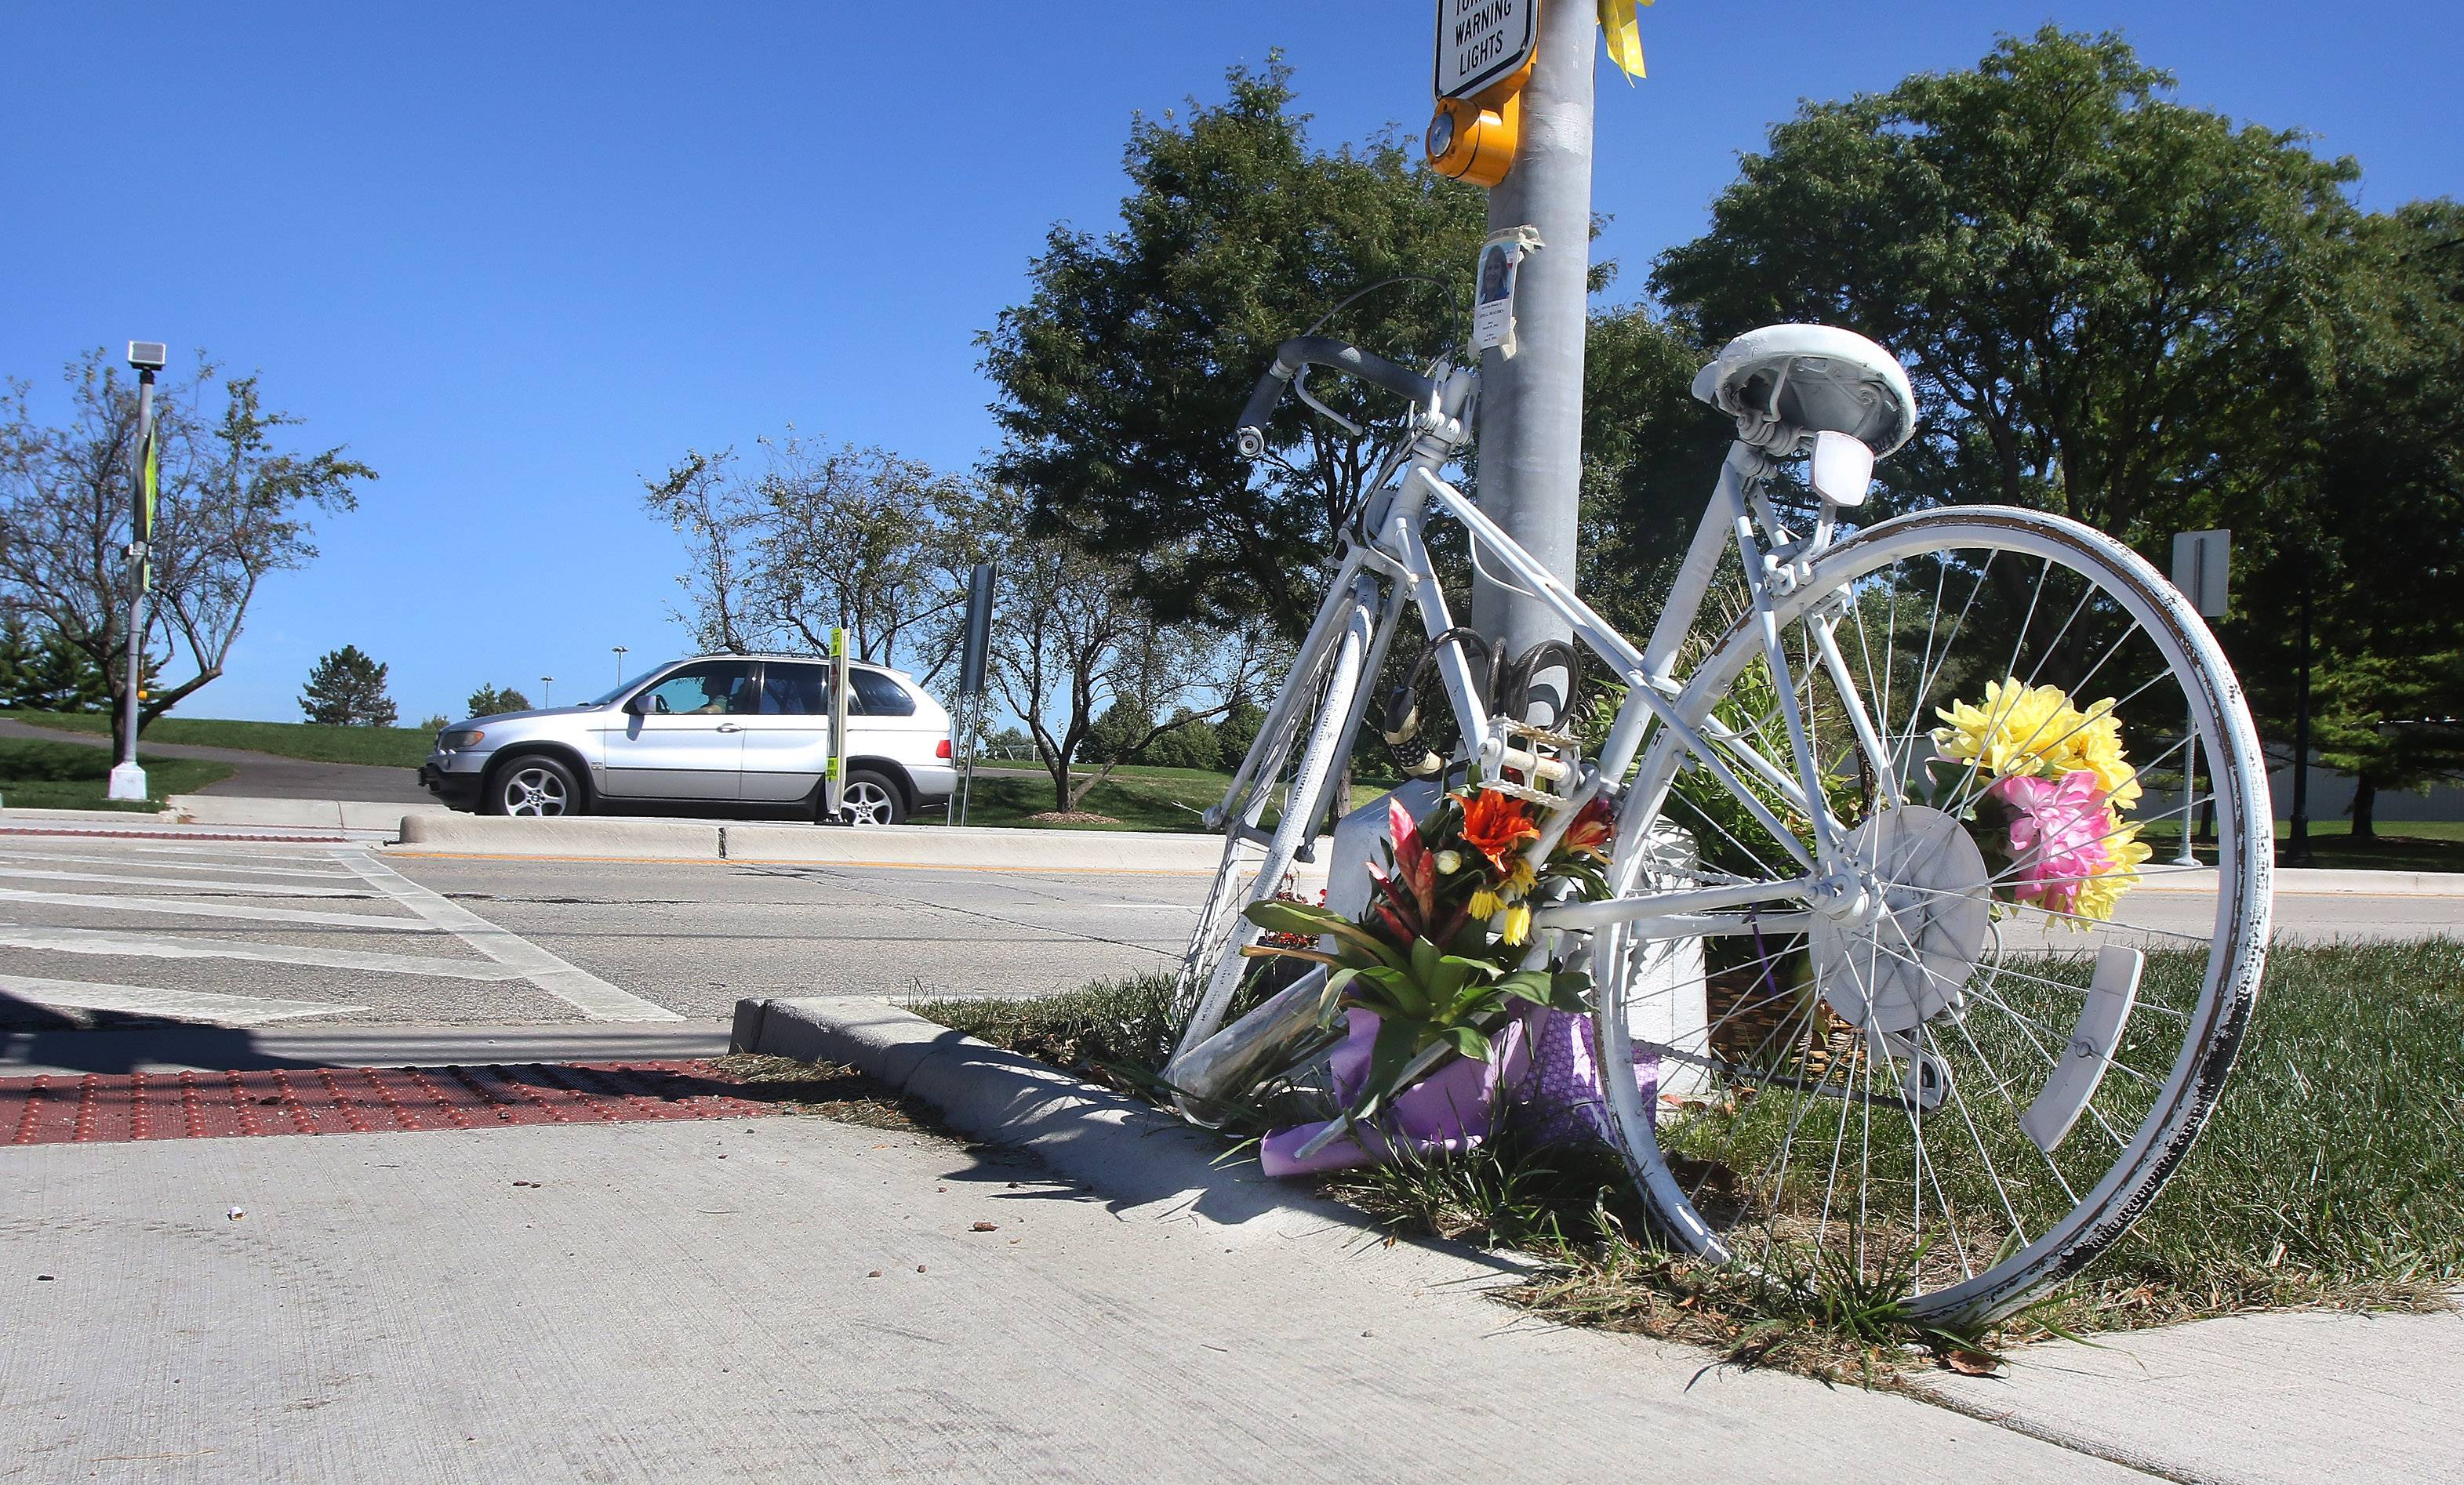 A bicycle sits near the pedestrian crosswalk on Central Road near Weller Lane in Mount Prospect in memory of Joni Beaudry, who died on June 9 when she was hit by a driver.